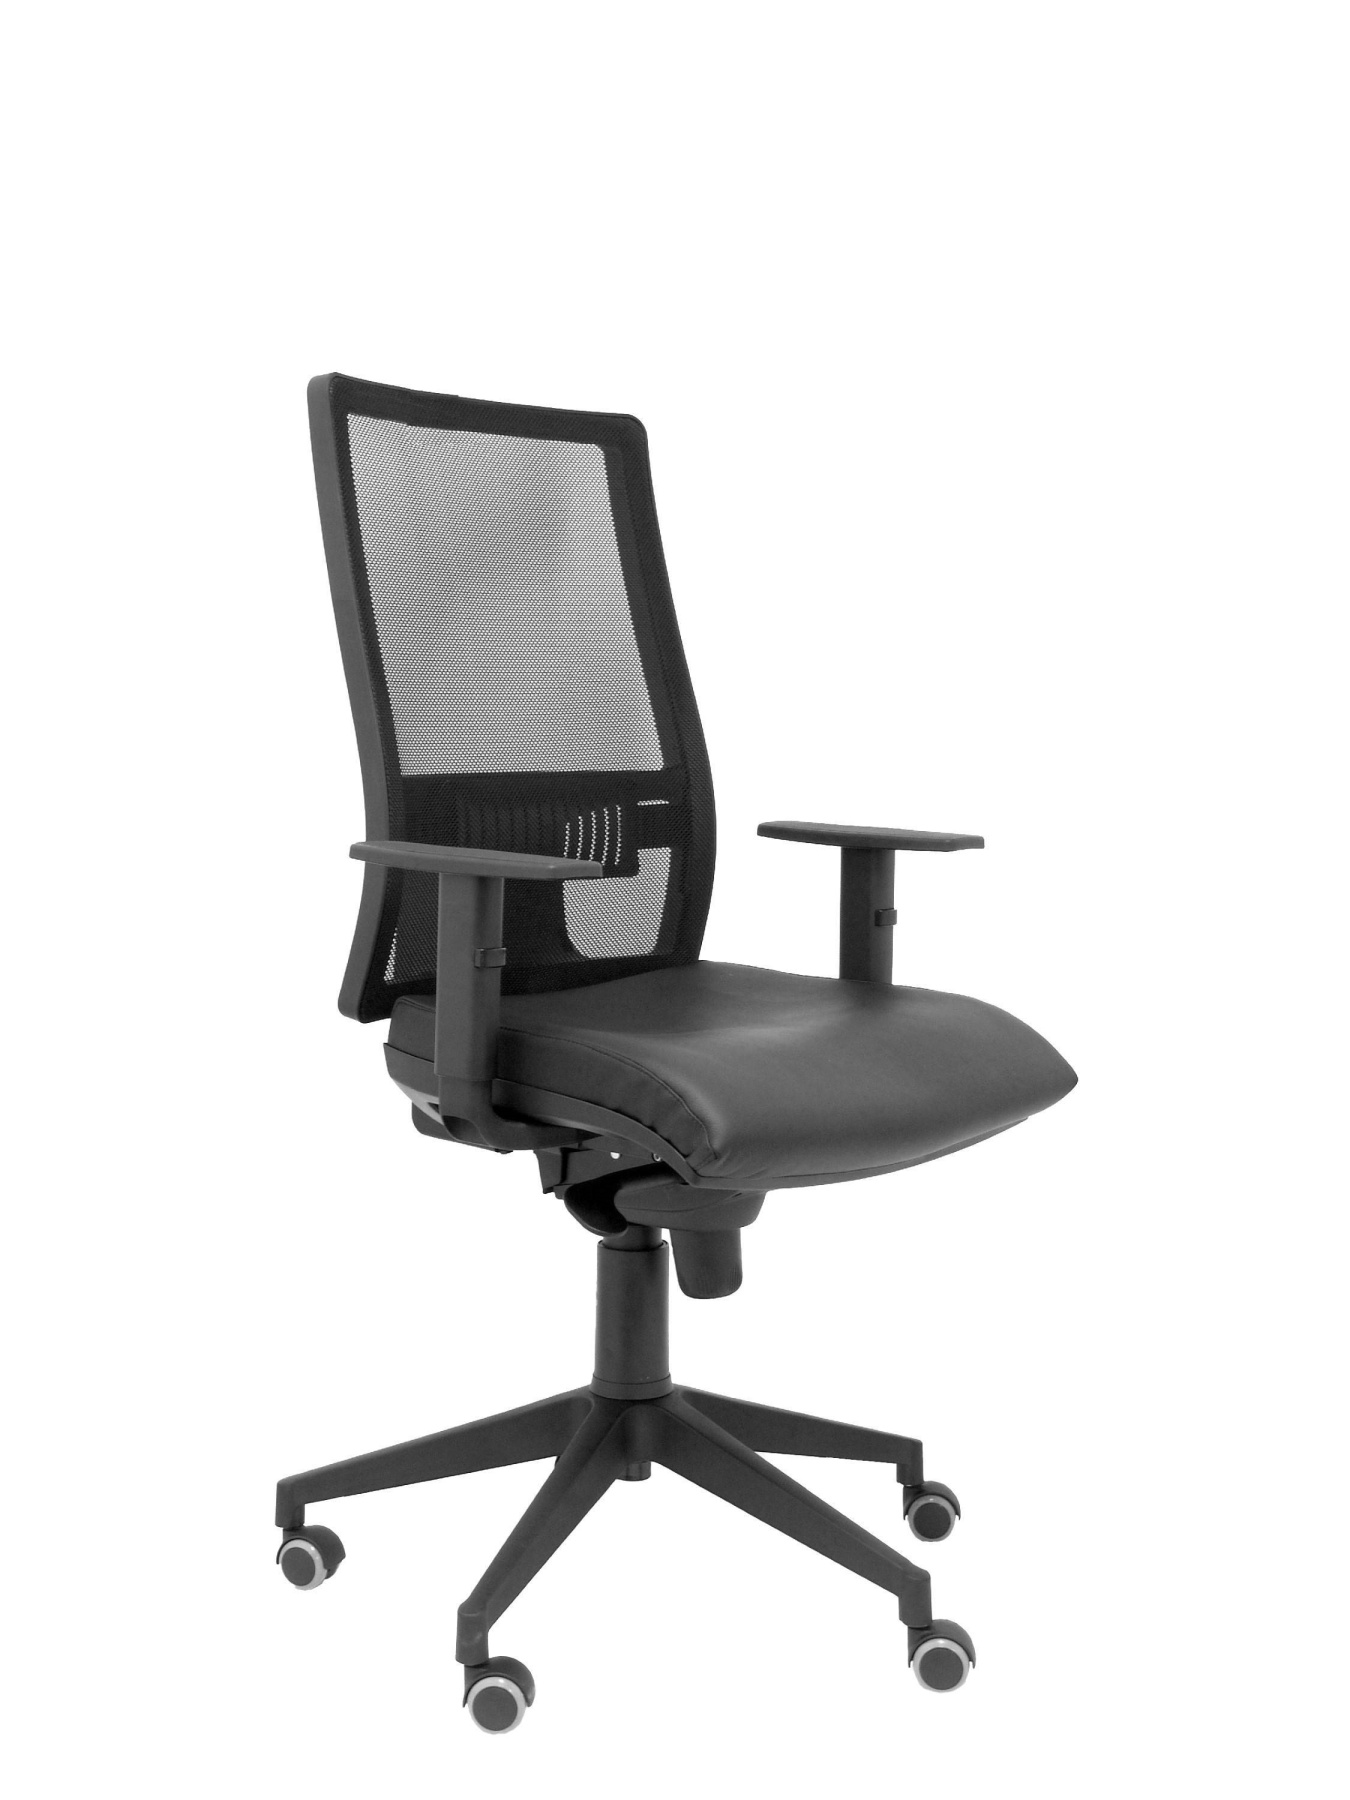 Ergonomic Office Chair With Mechanism Synchro And Height Adjustable High Back Mesh Breathable With Cabecer